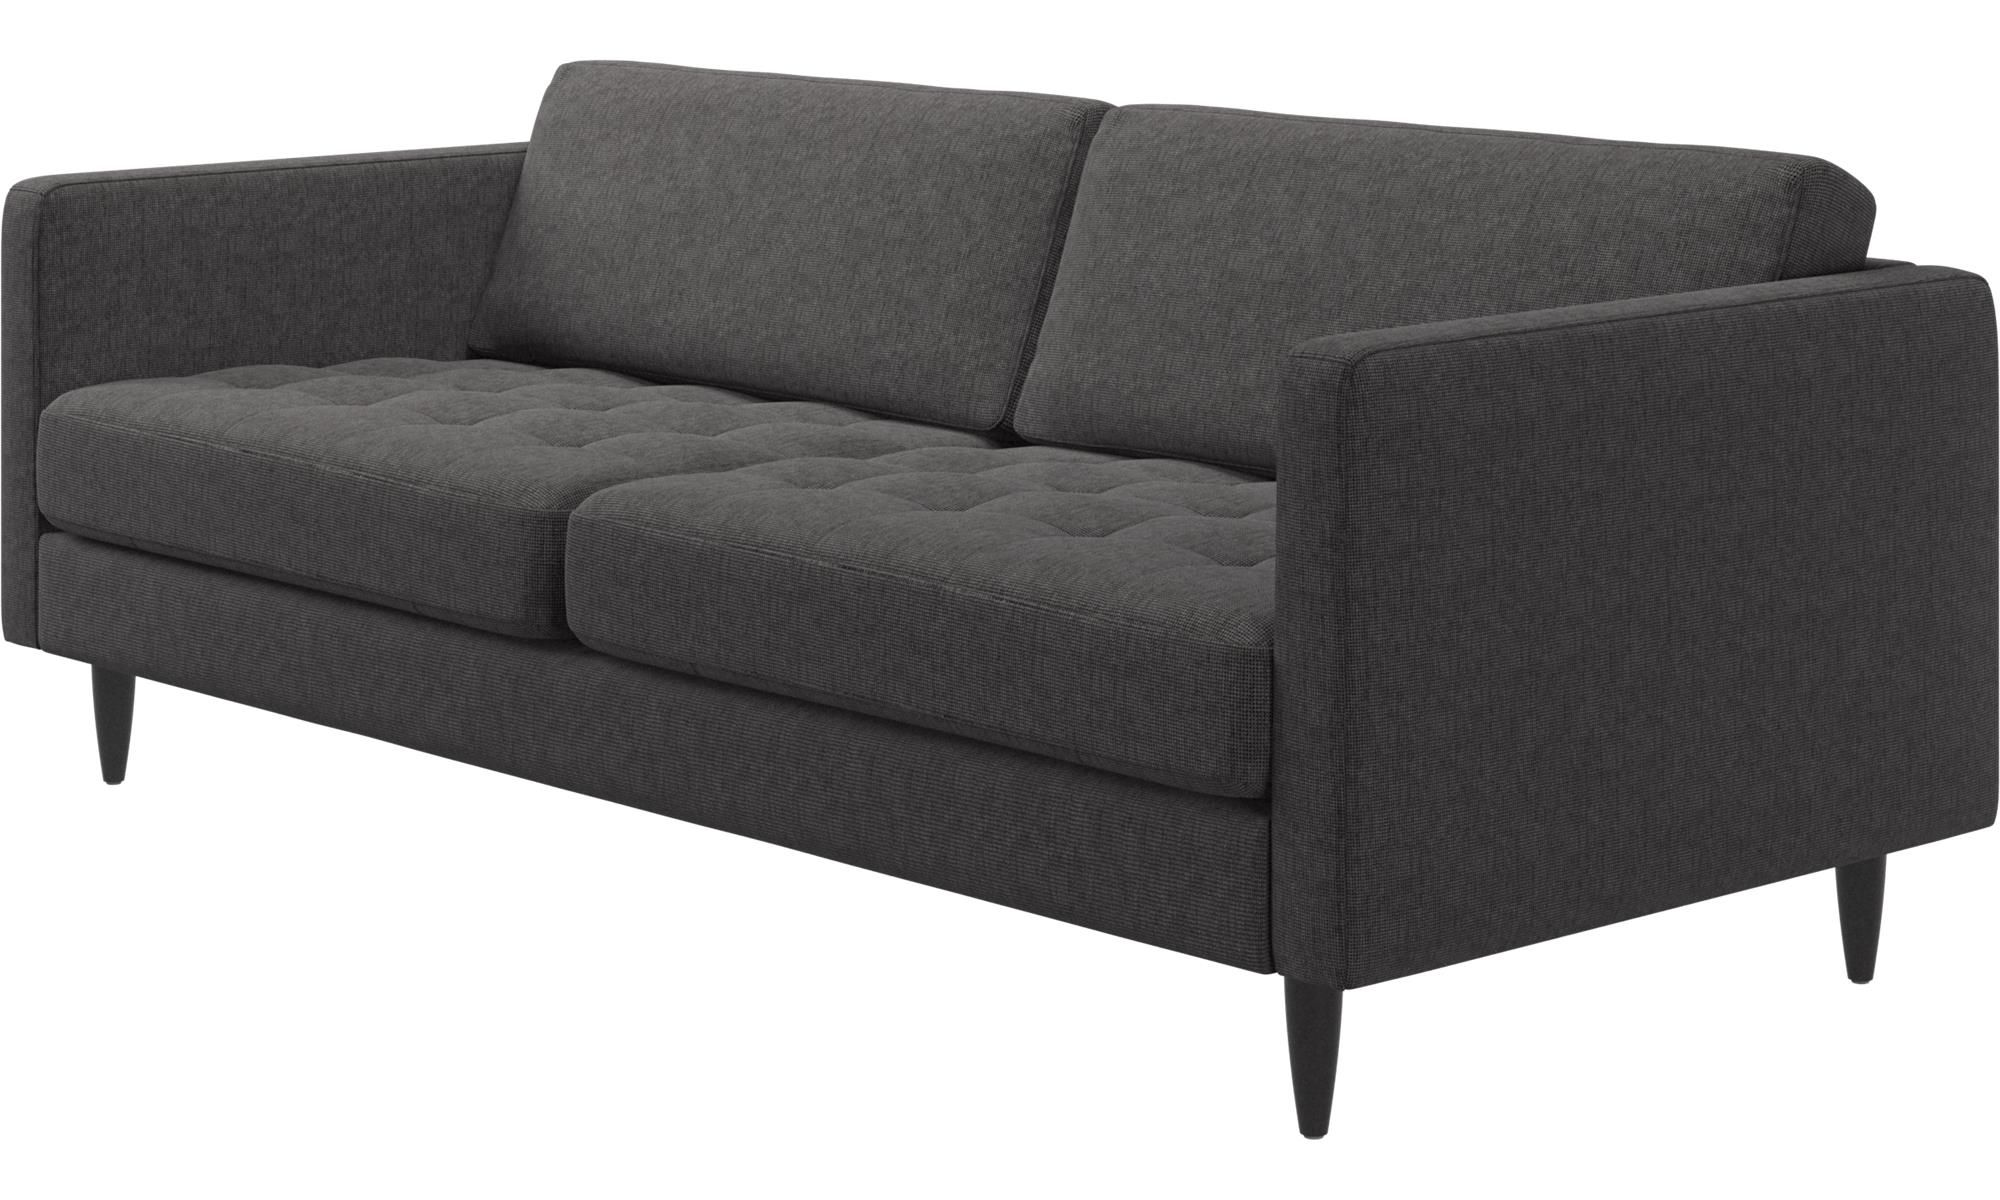 saka sofa available in fabrics and leathers Shown color dark